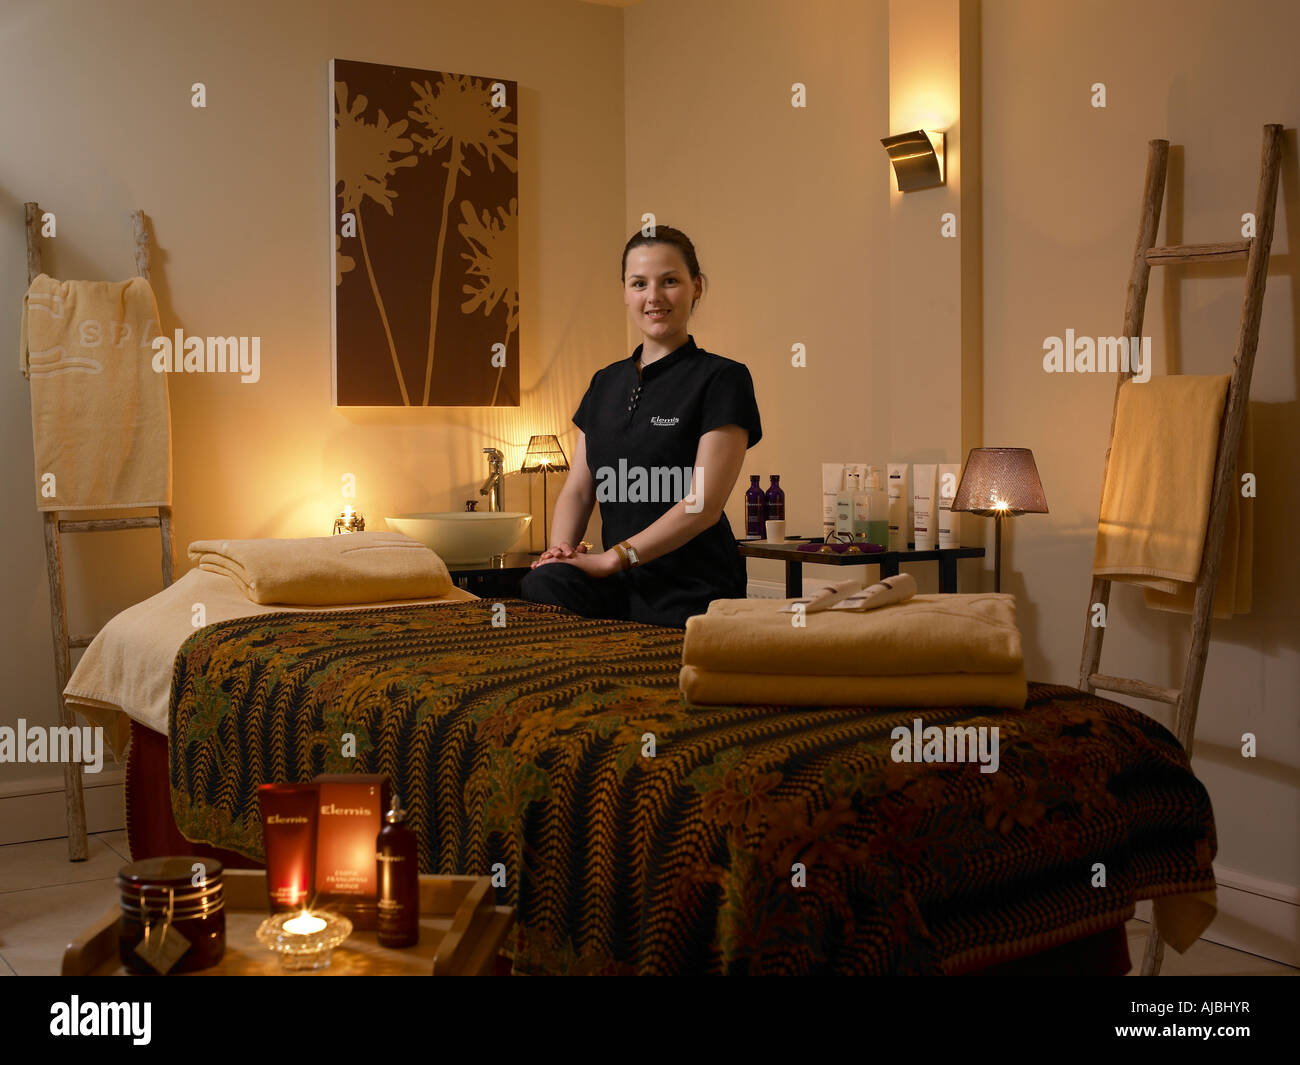 Welcome to the treatment room - Stock Image